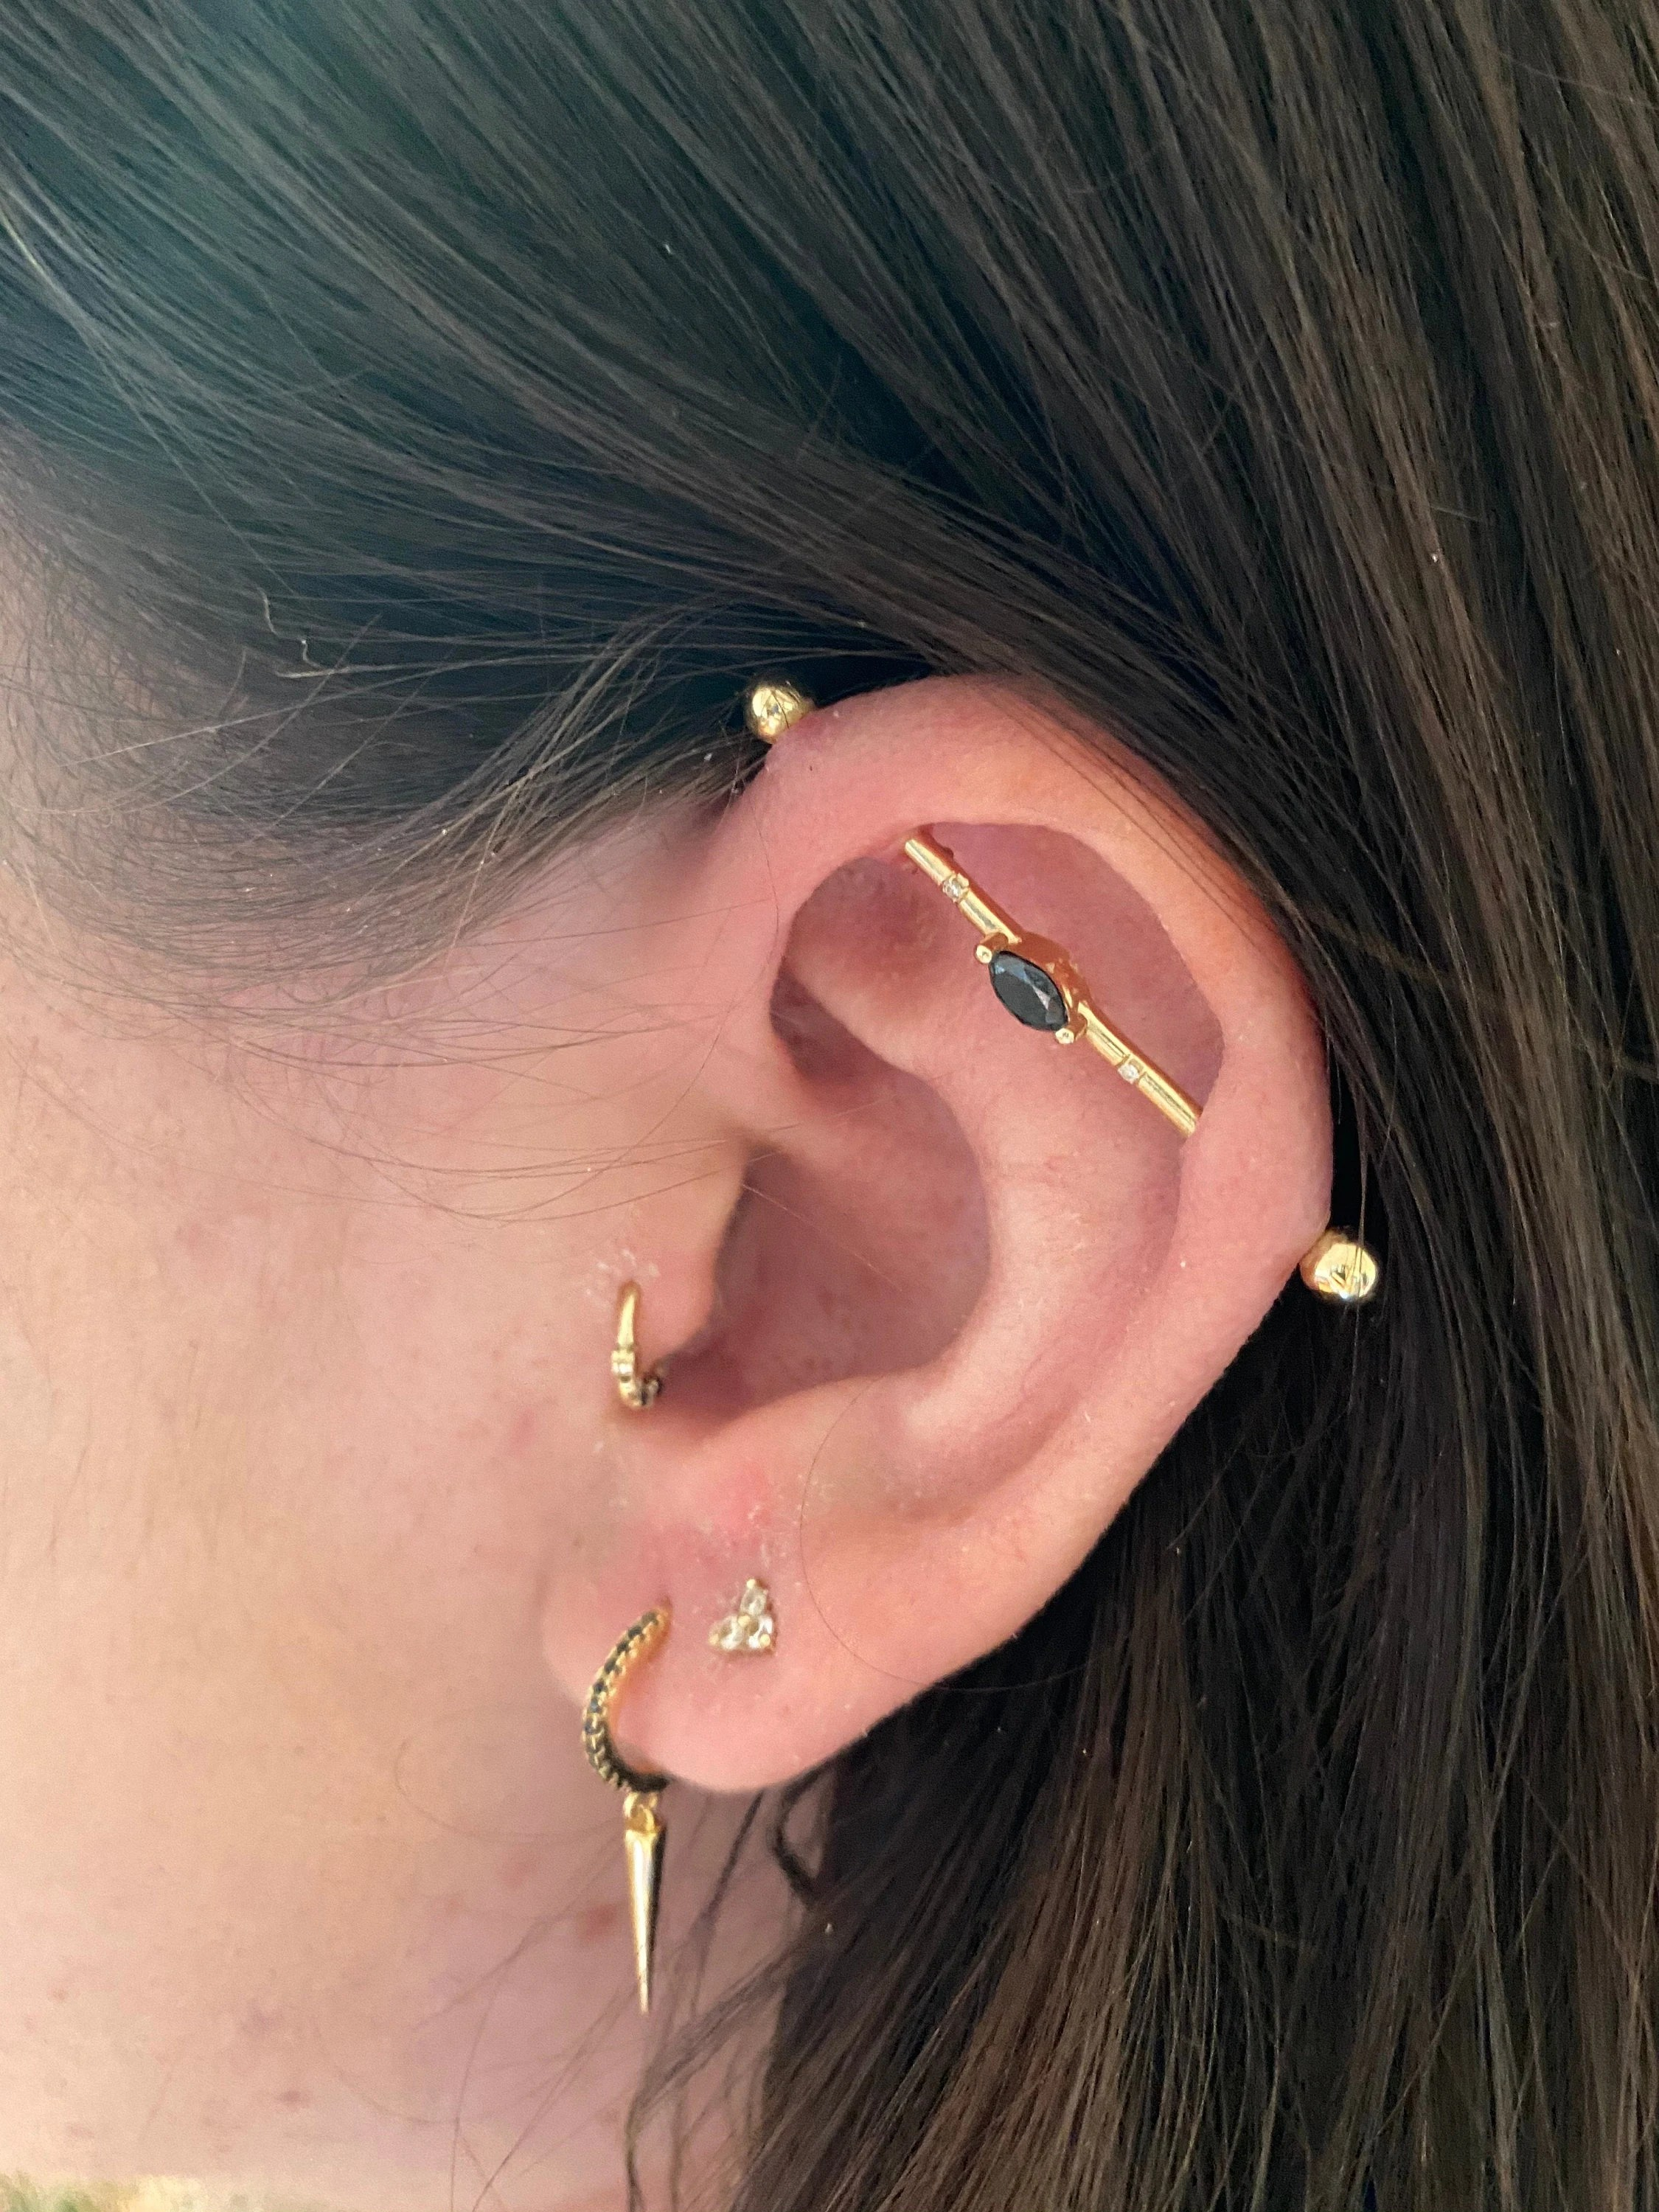 Industrial Piercing Jewelry Gold : industrial, piercing, jewelry, Industrial, Piercing, Jewelry, Yellow, Marquise, Black